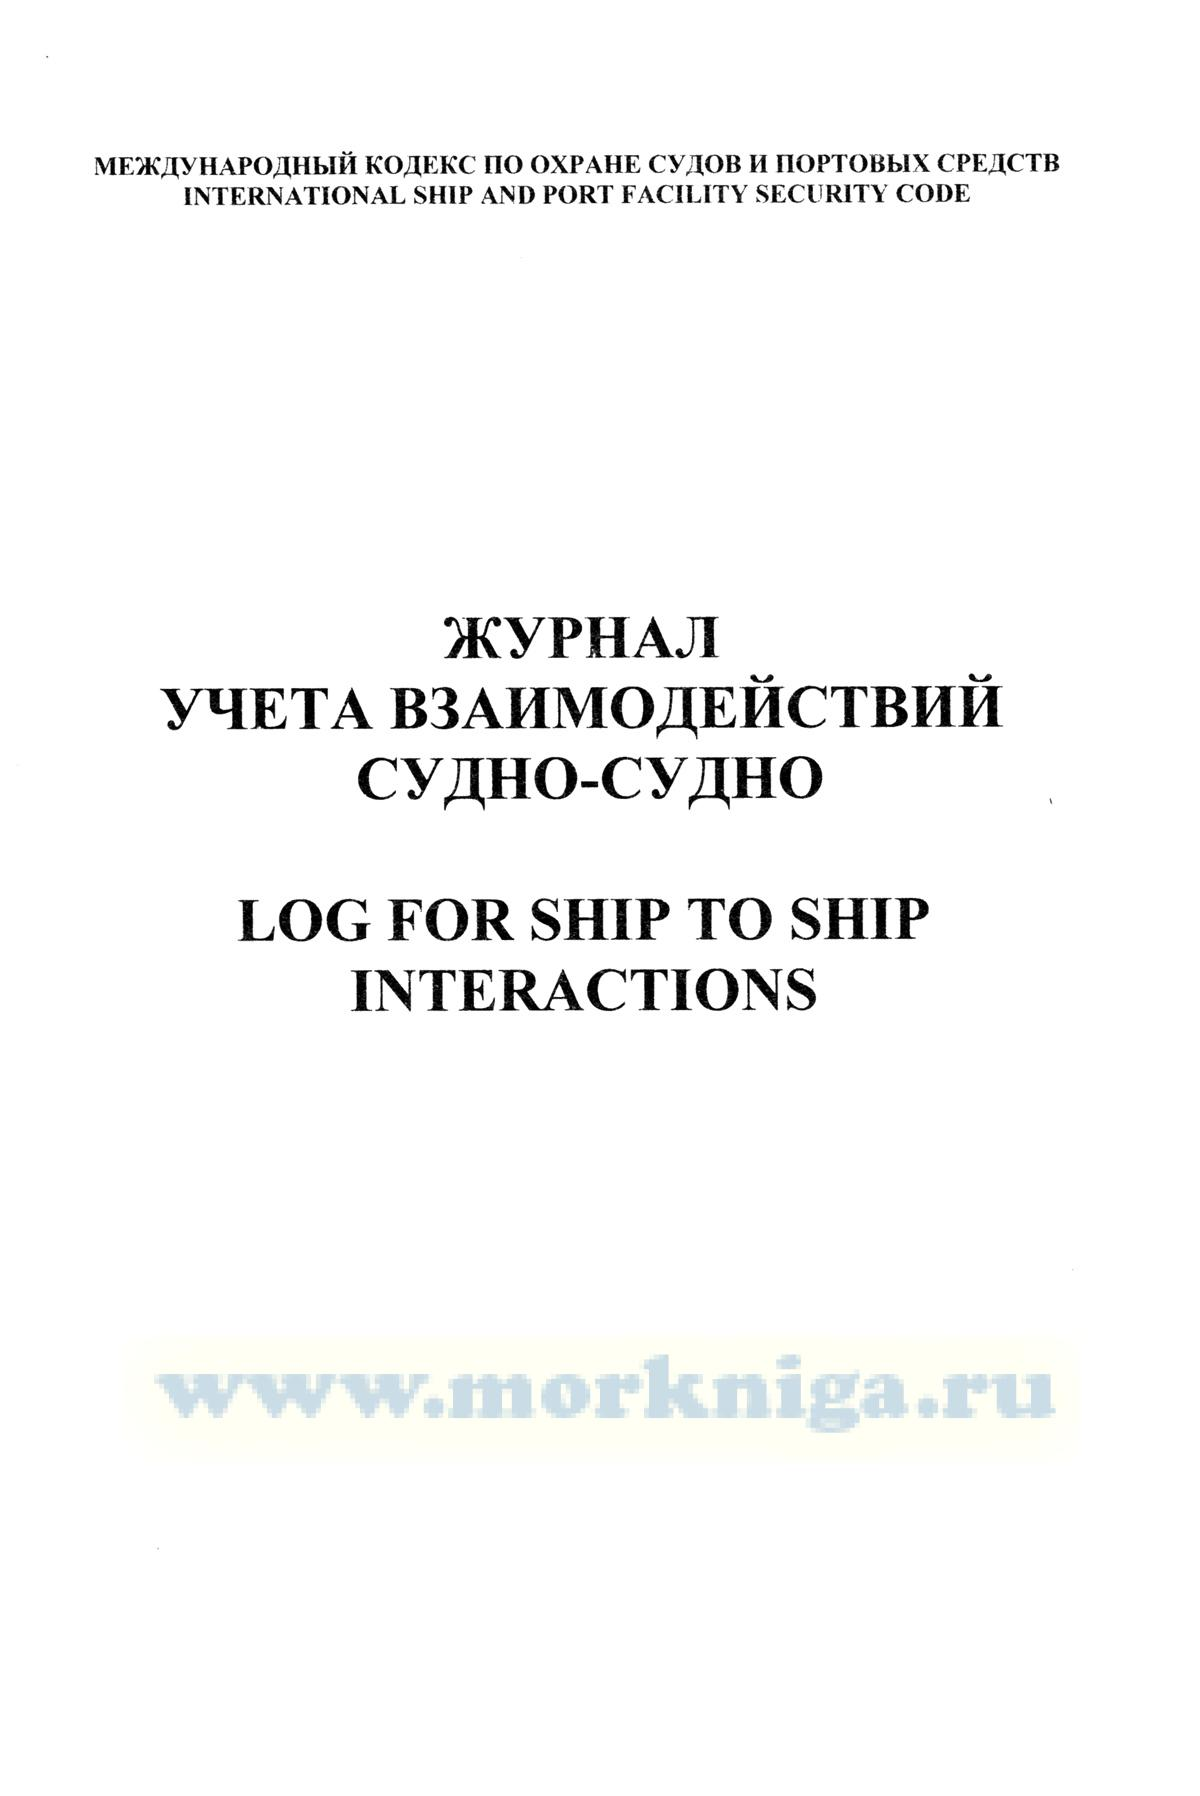 Журнал учета взаимодействия судно-судно. Log for ship to ship interactions